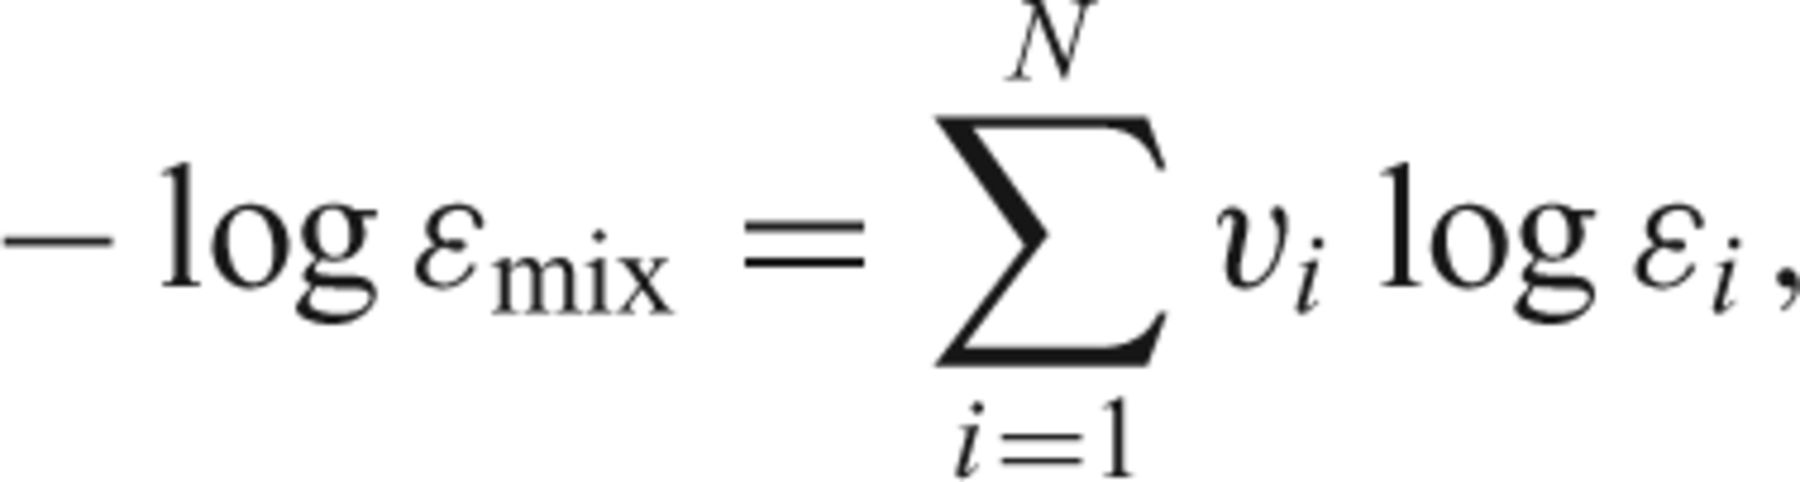 Measurement Of The Complex Permittivity Dry Rocks And Minerals By Change In Dielectric Constant Using Resonance Circuit Numerical Computation Indicates That Lichteneckers Formulae For Statistical Mixture Is Most Appropriate Estimating Average